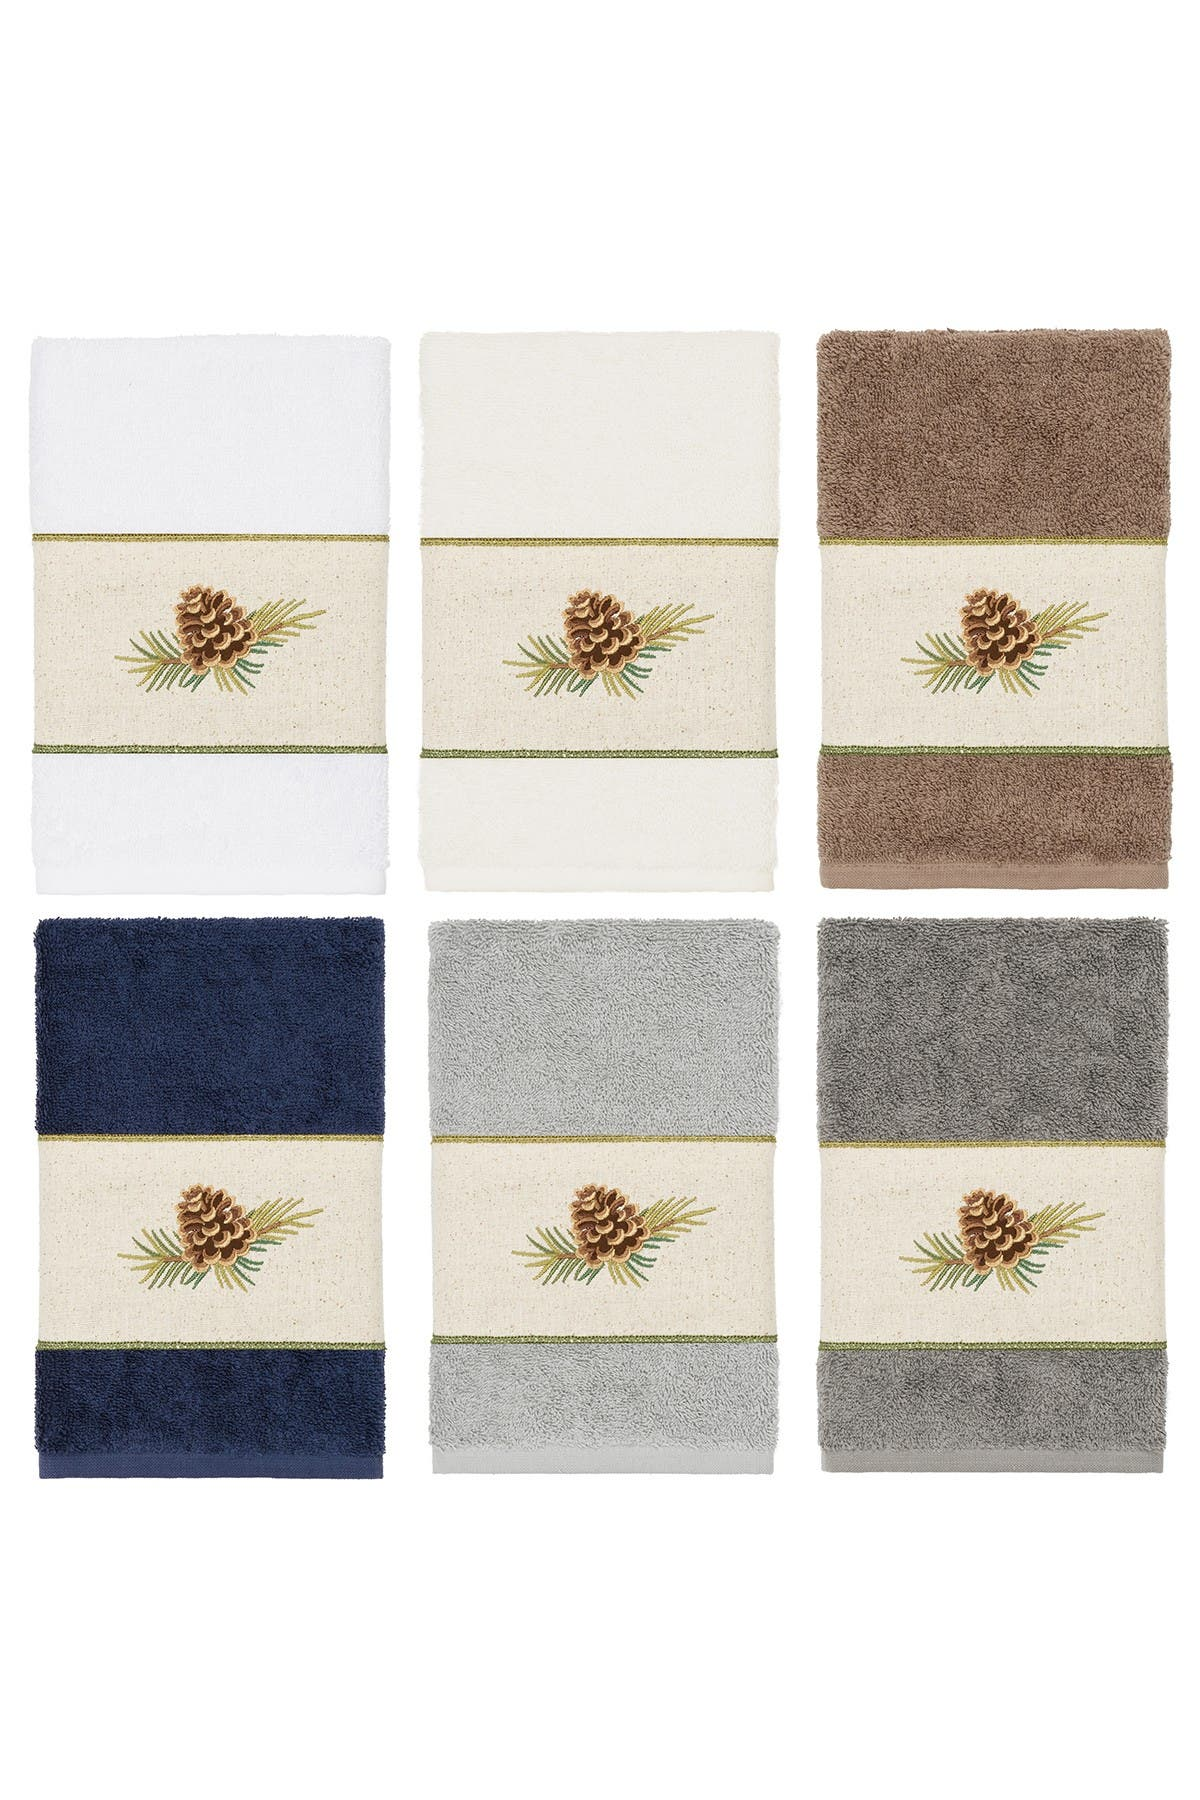 Image of LINUM HOME Pierre Embellished Hand Towel - Cream